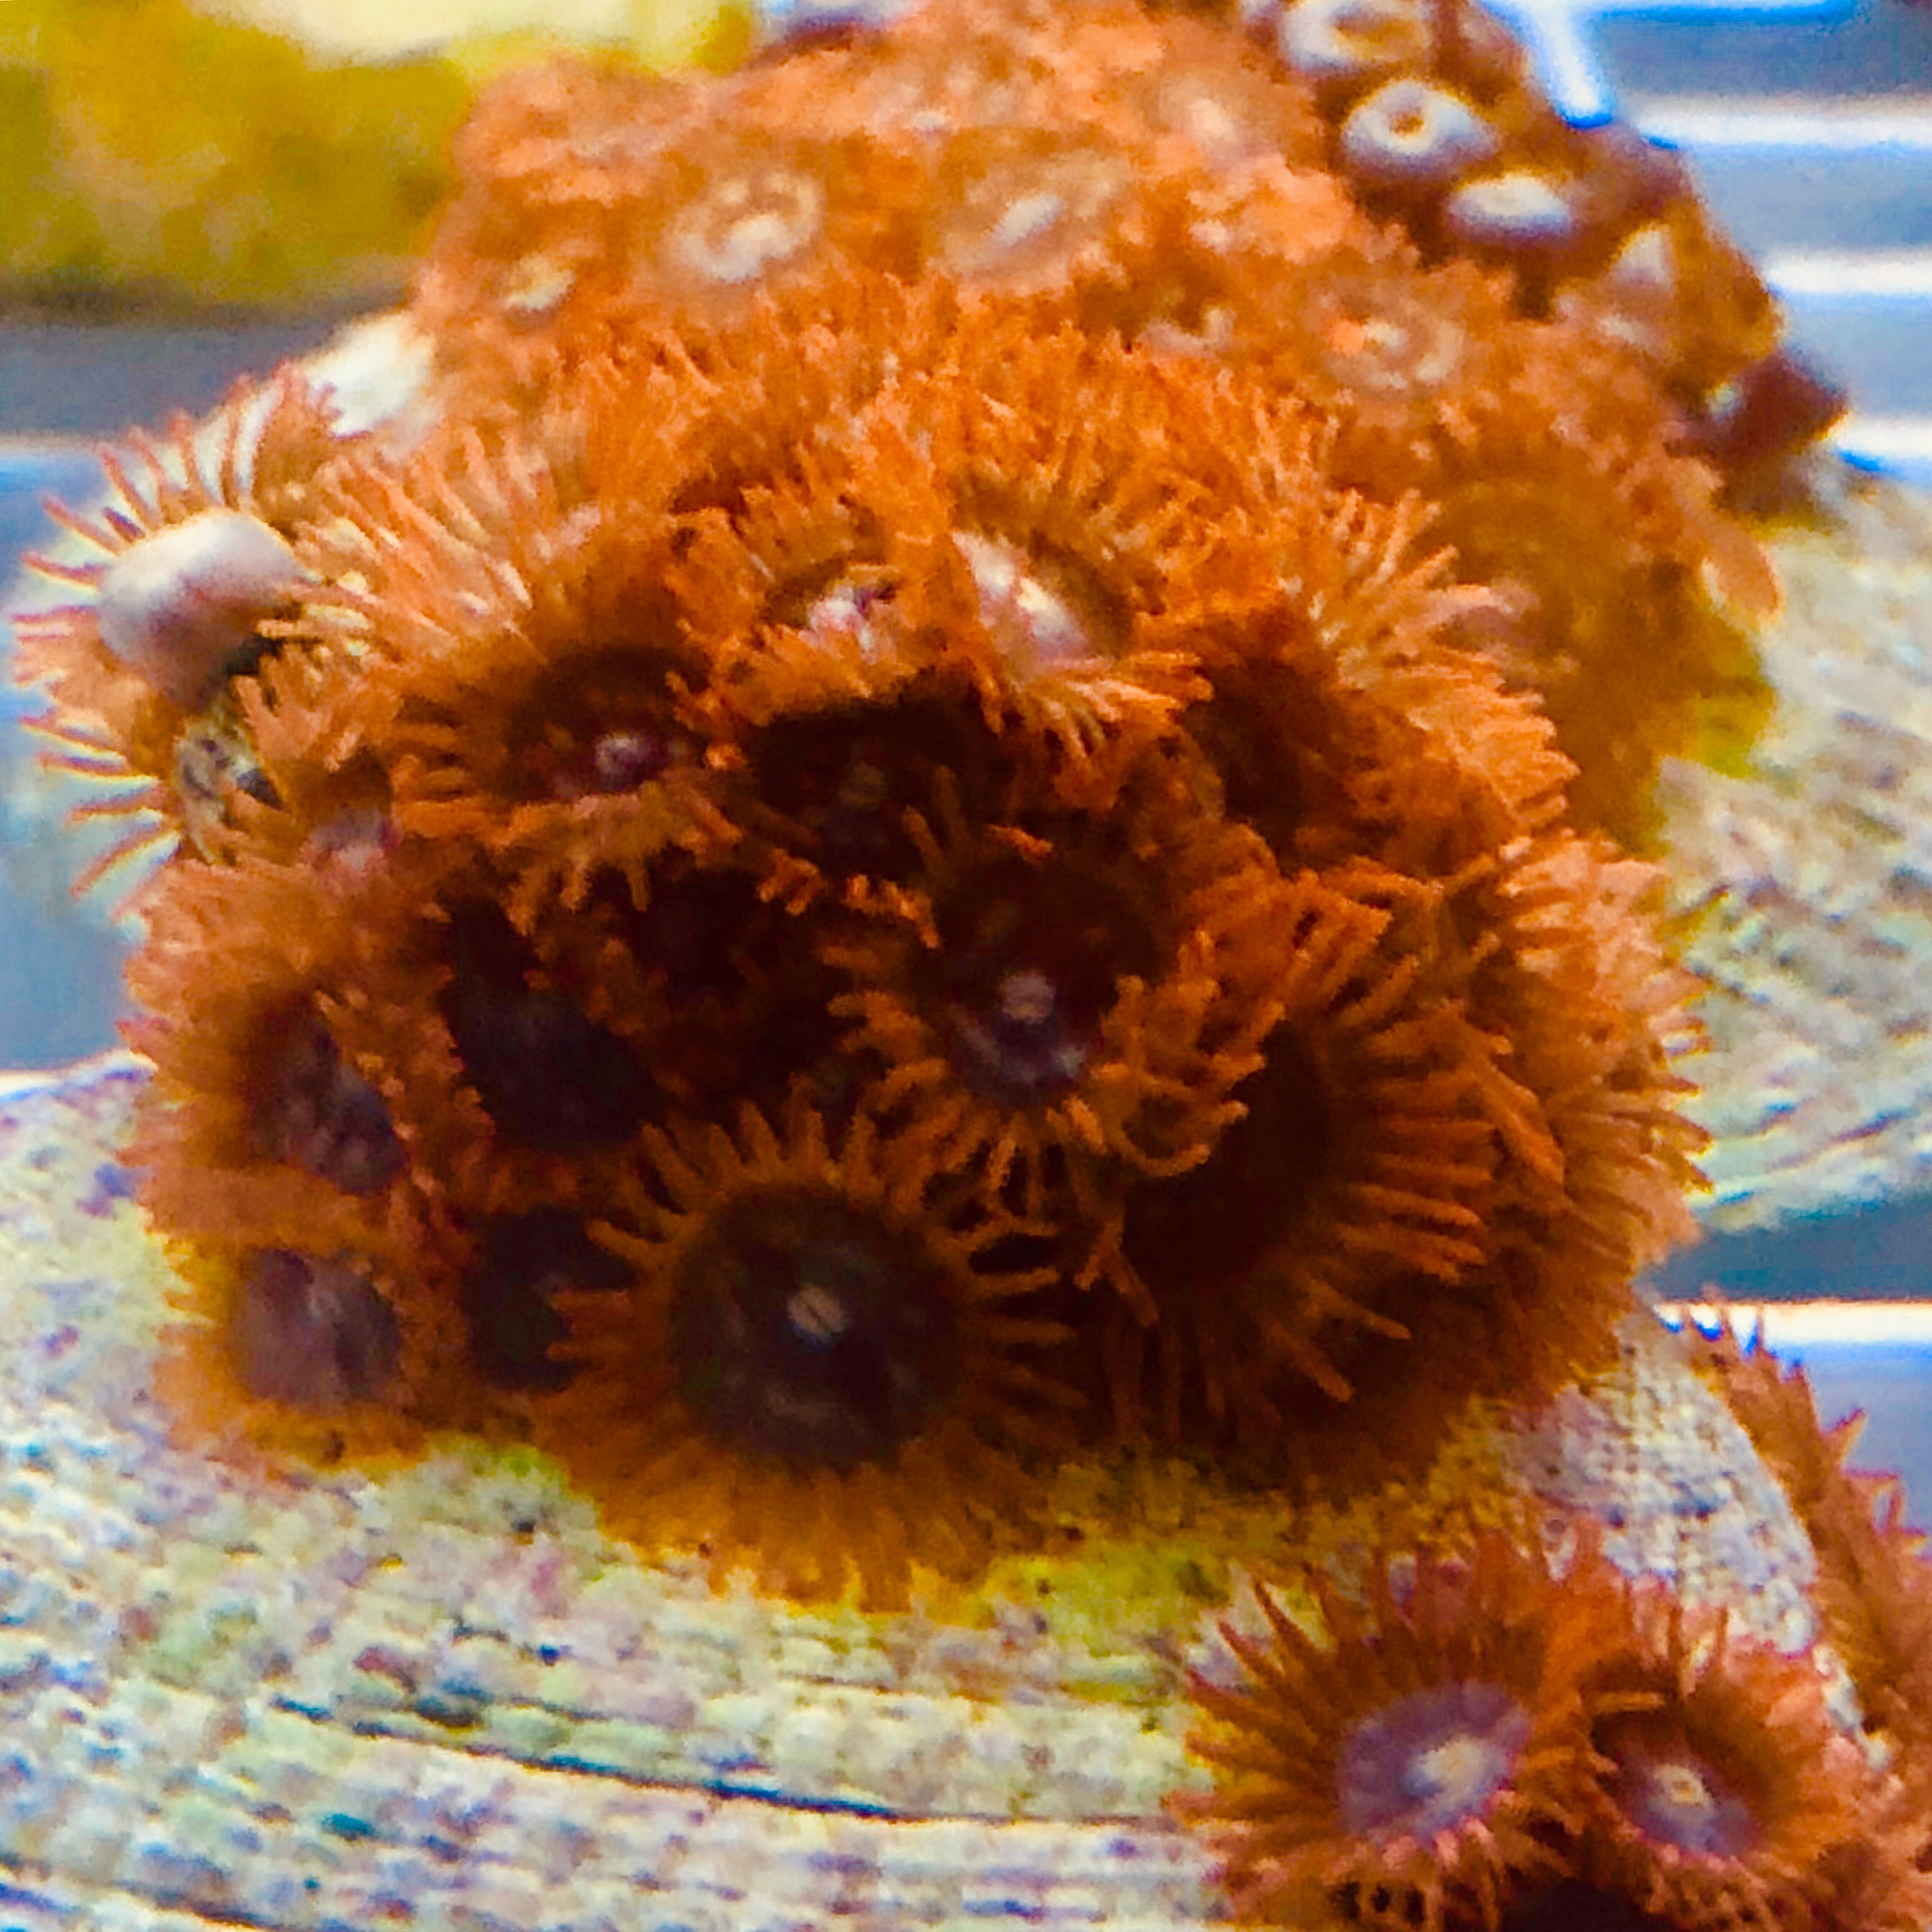 Fire and Ice Zoanthid Cluster